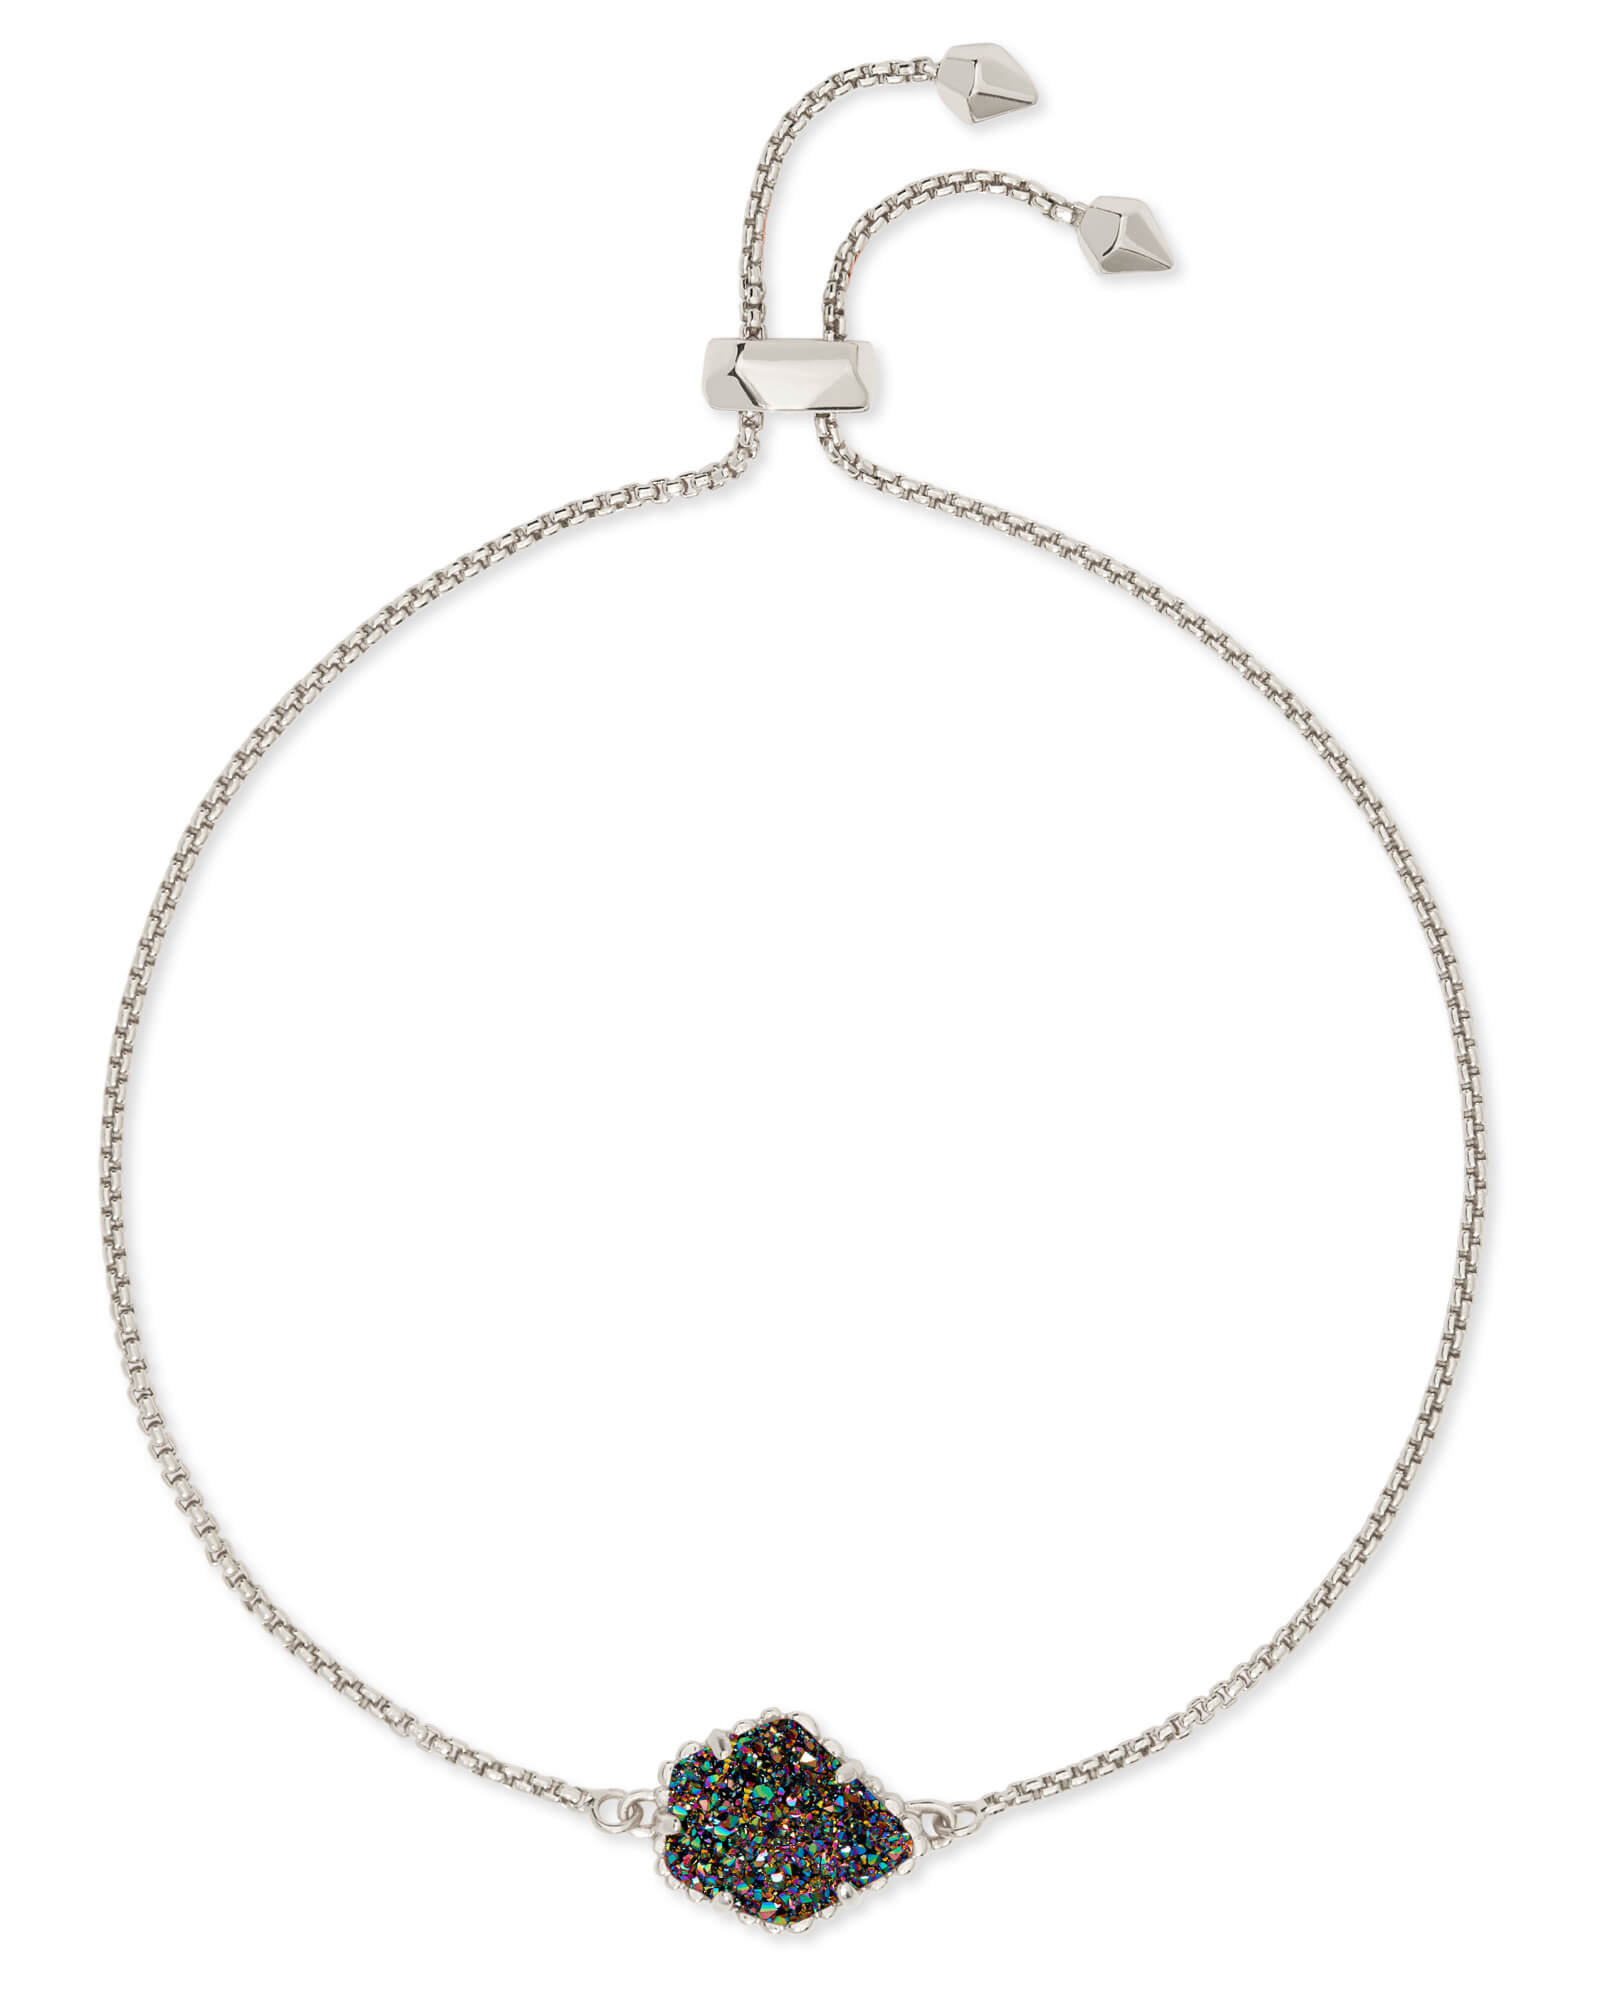 Theo Silver Adjustable Chain Bracelet in Multicolor Drusy